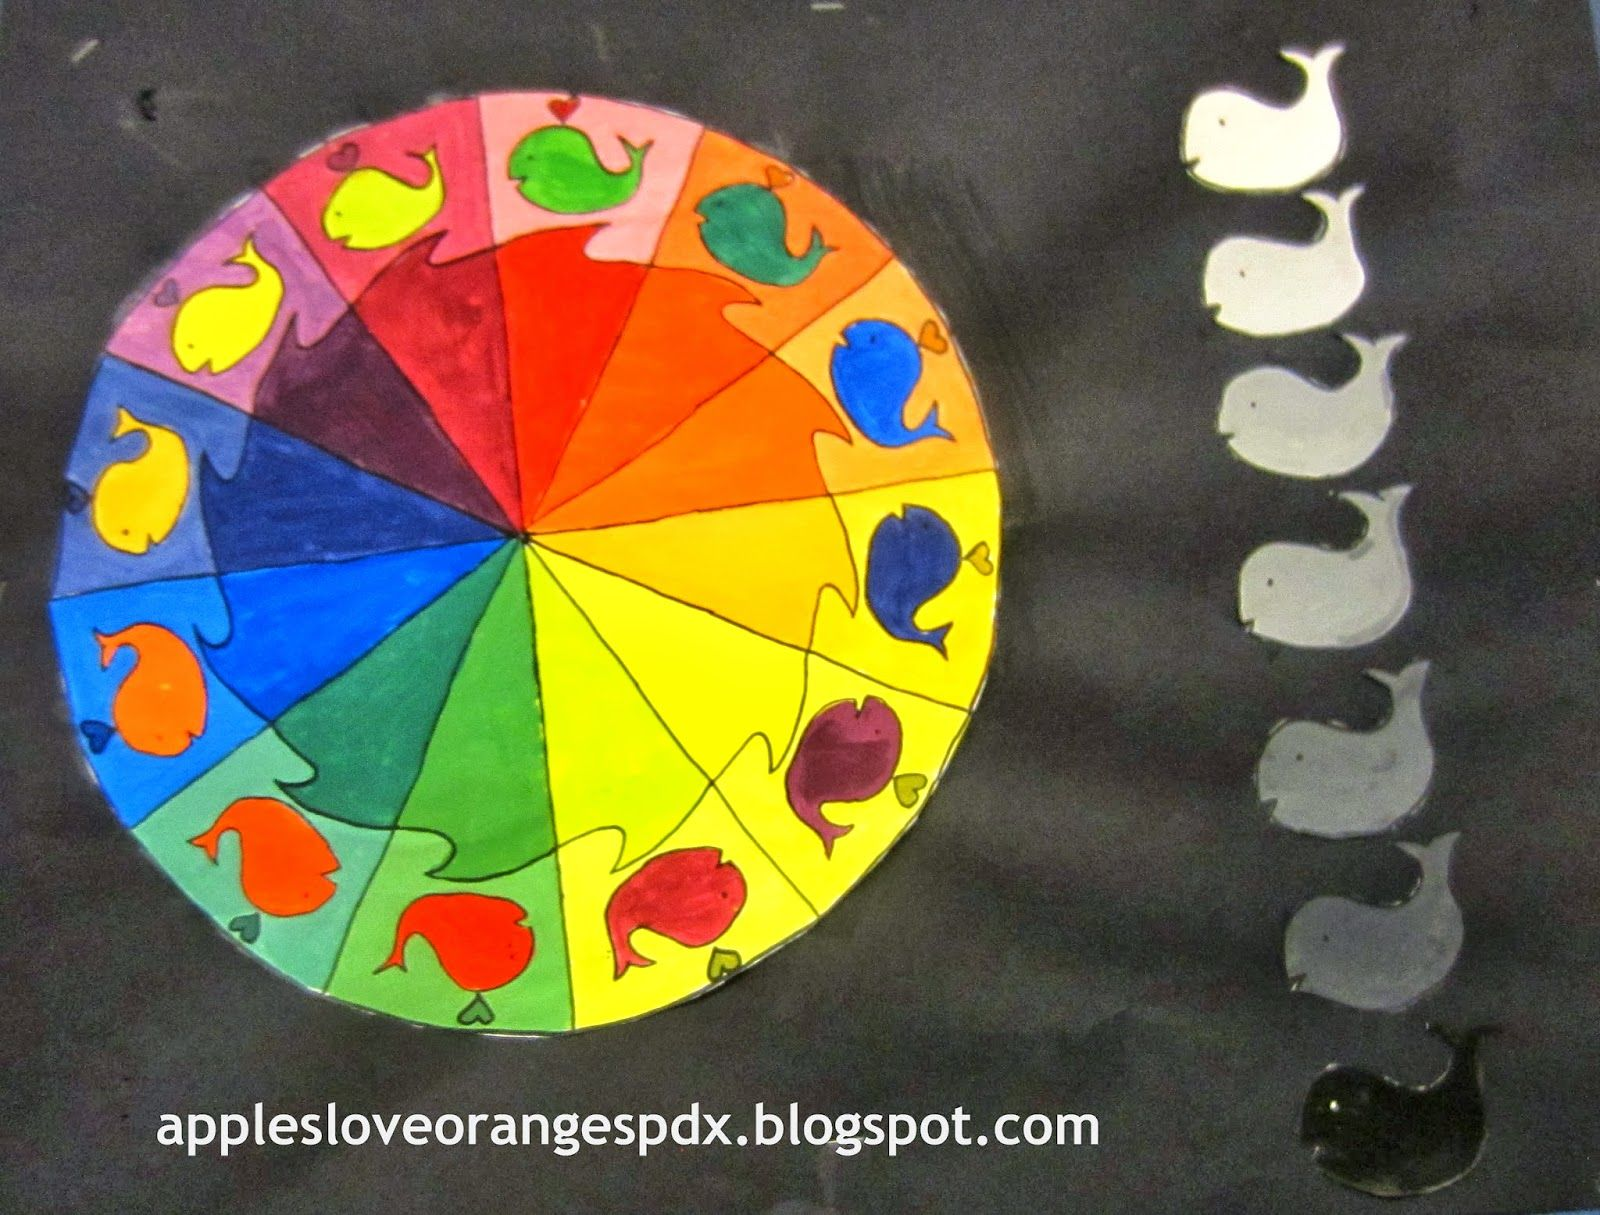 color wheel ideas make - Google Search